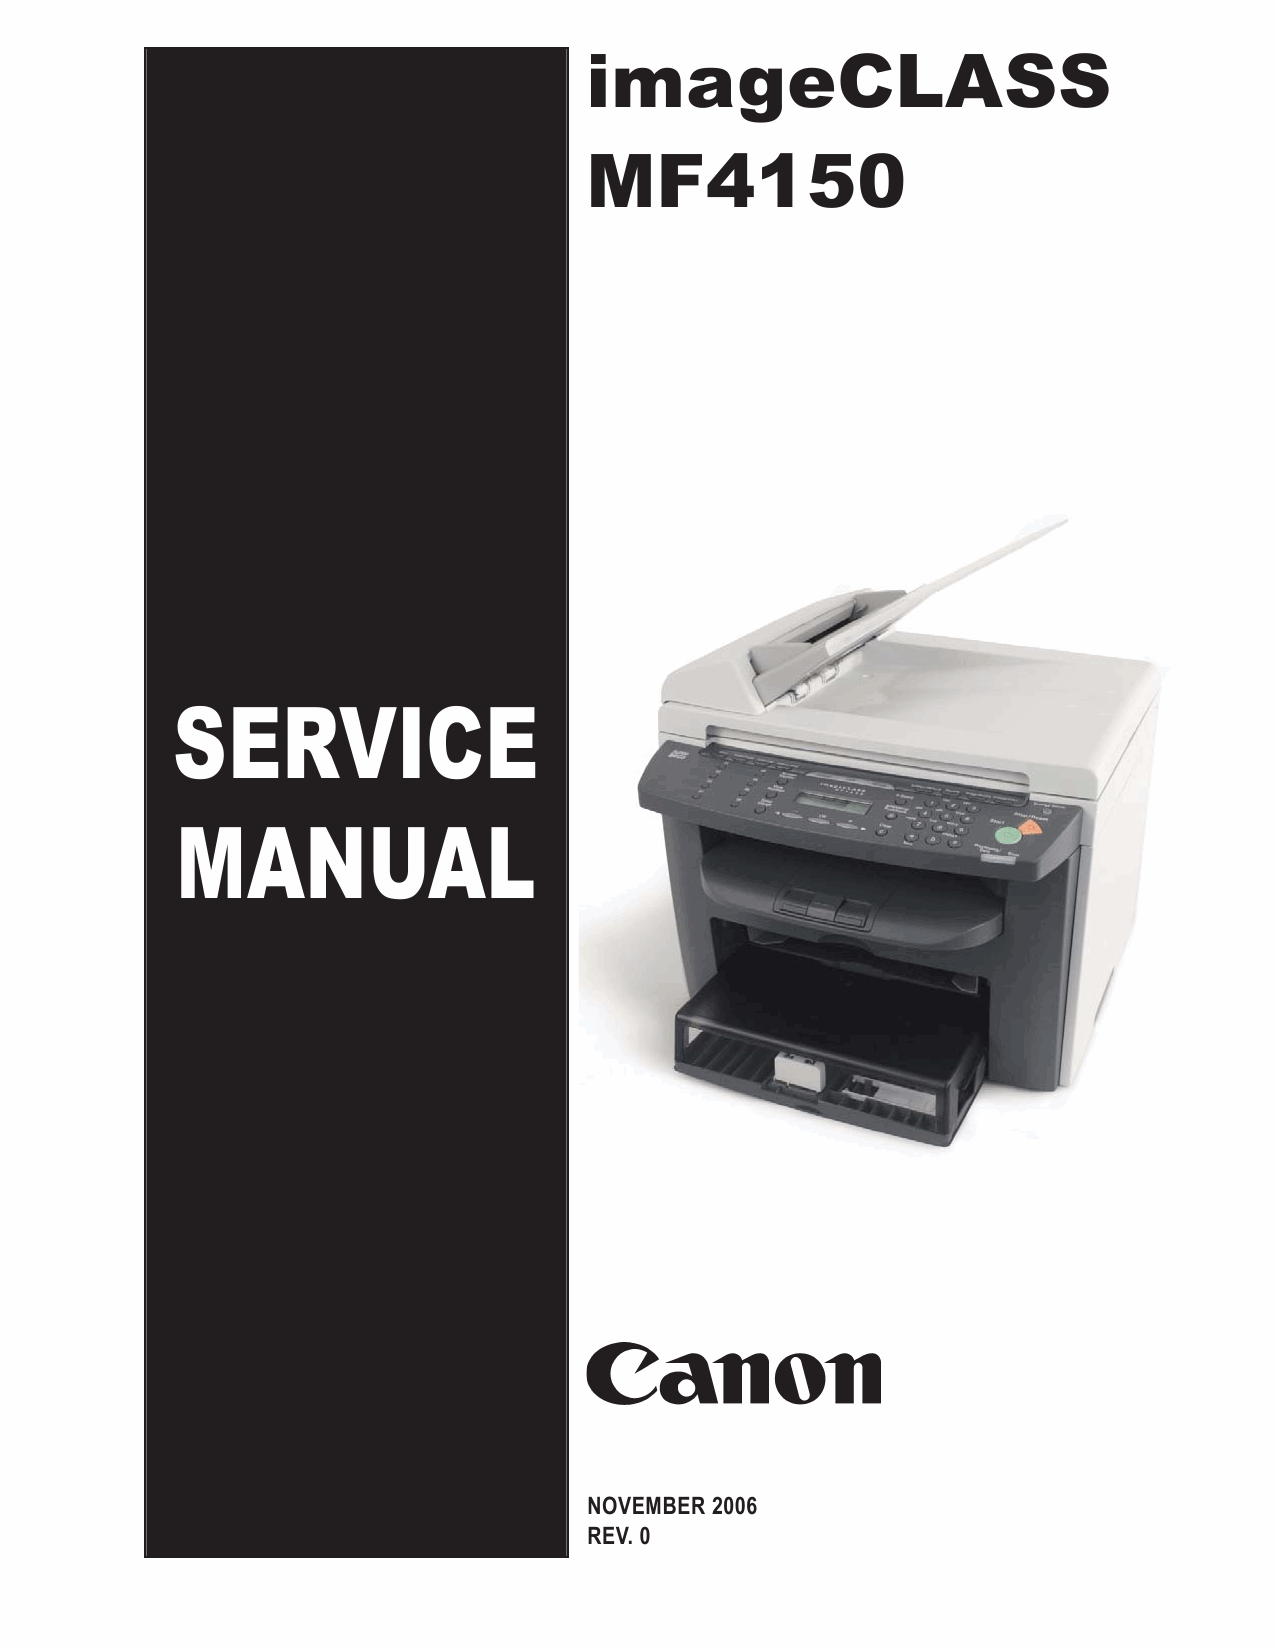 Canon imageCLASS MF-4150 Service and Parts Manual-1